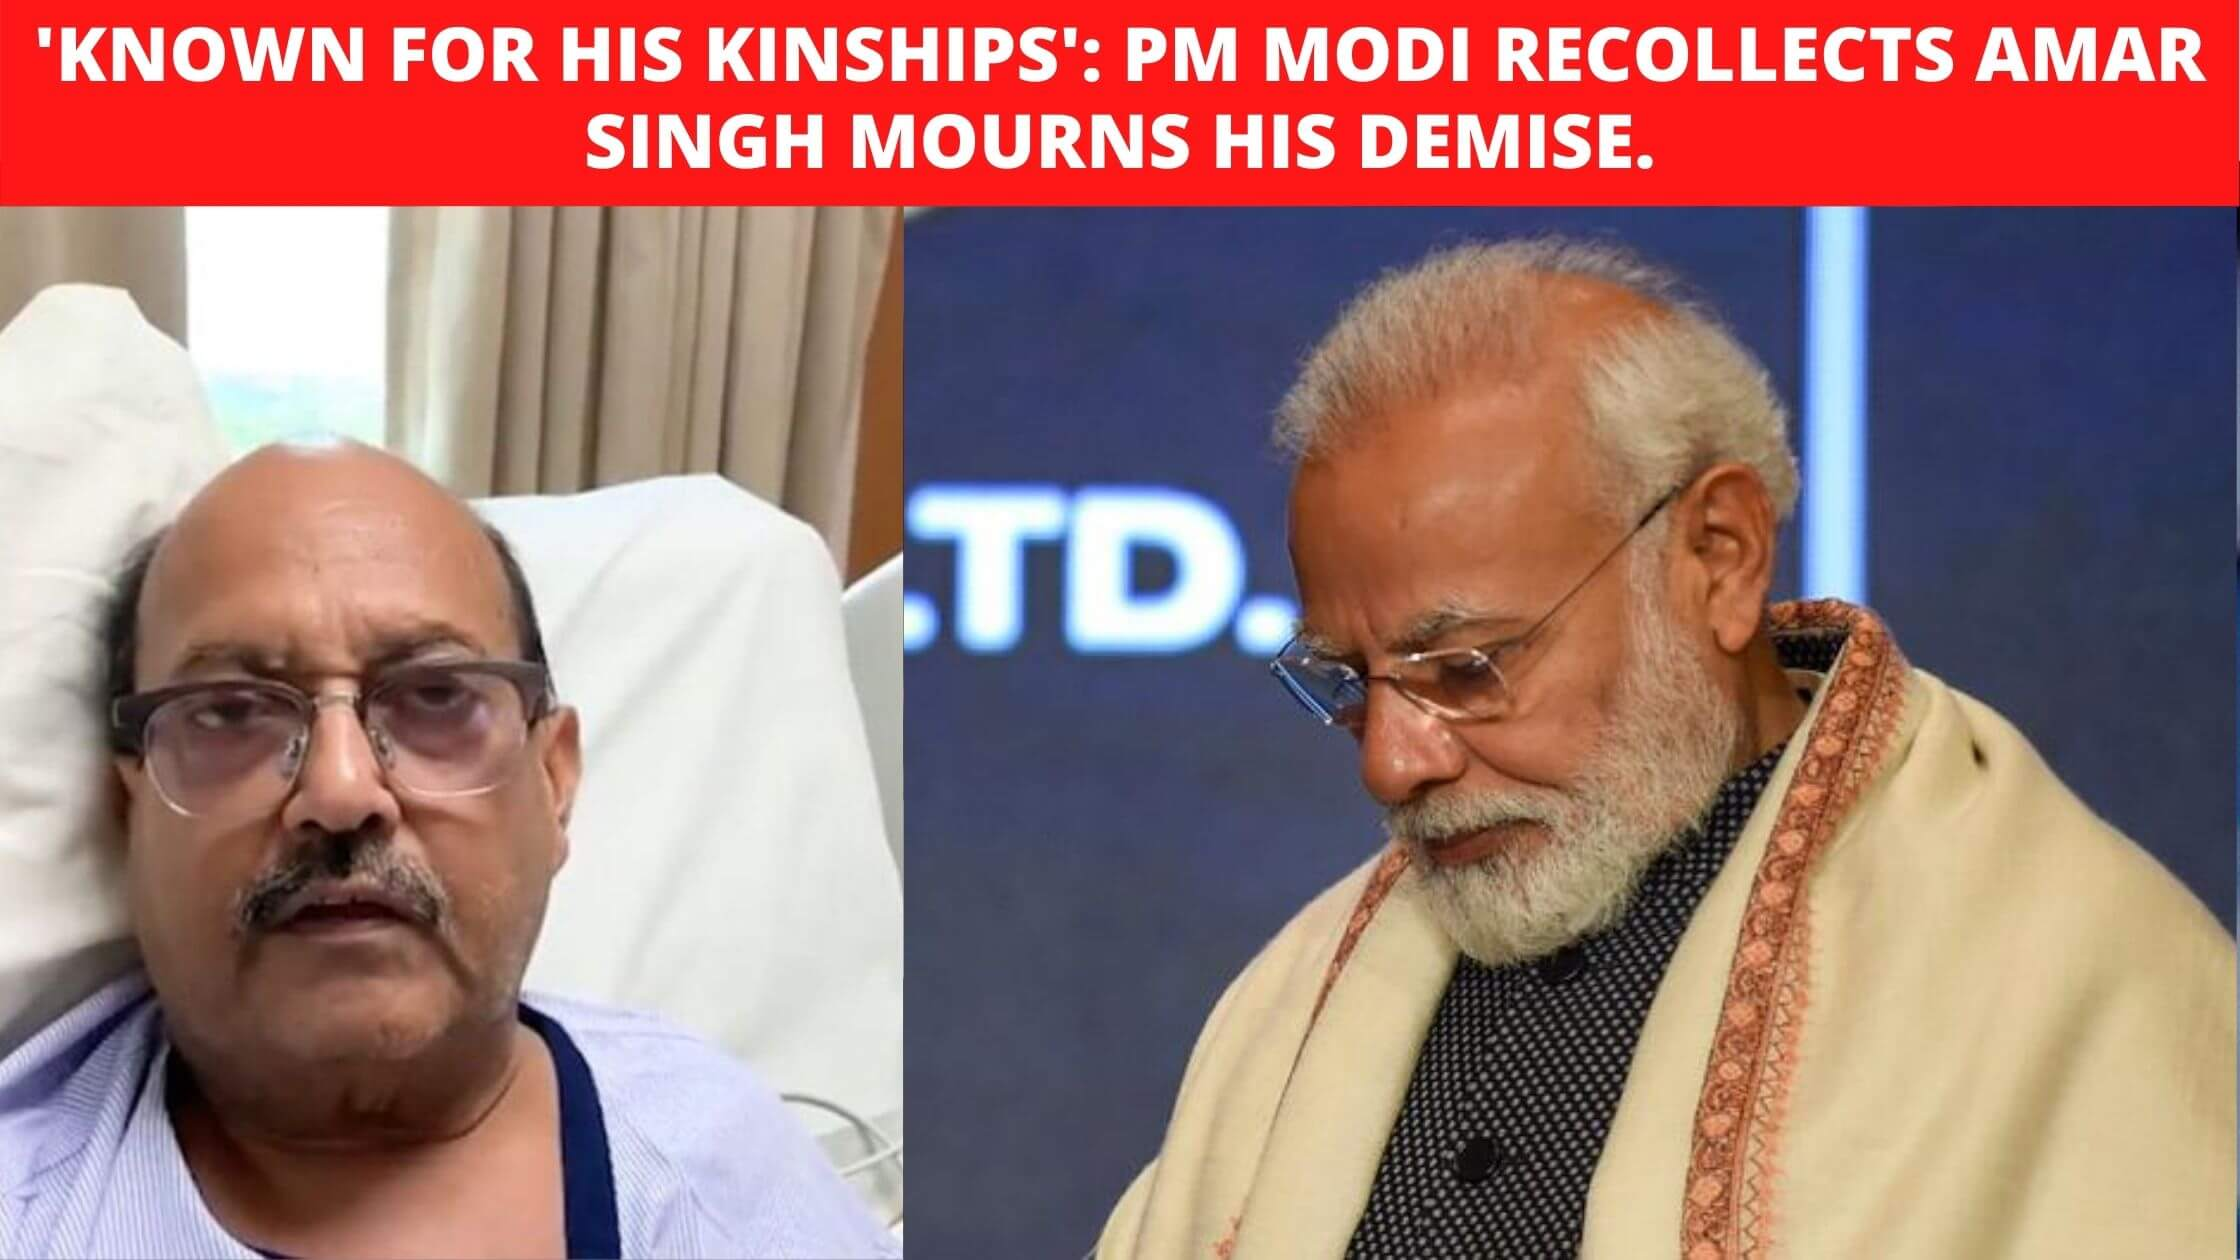 'Known for his kinships'_ PM Modi recollects Amar Singh mourns his demise.